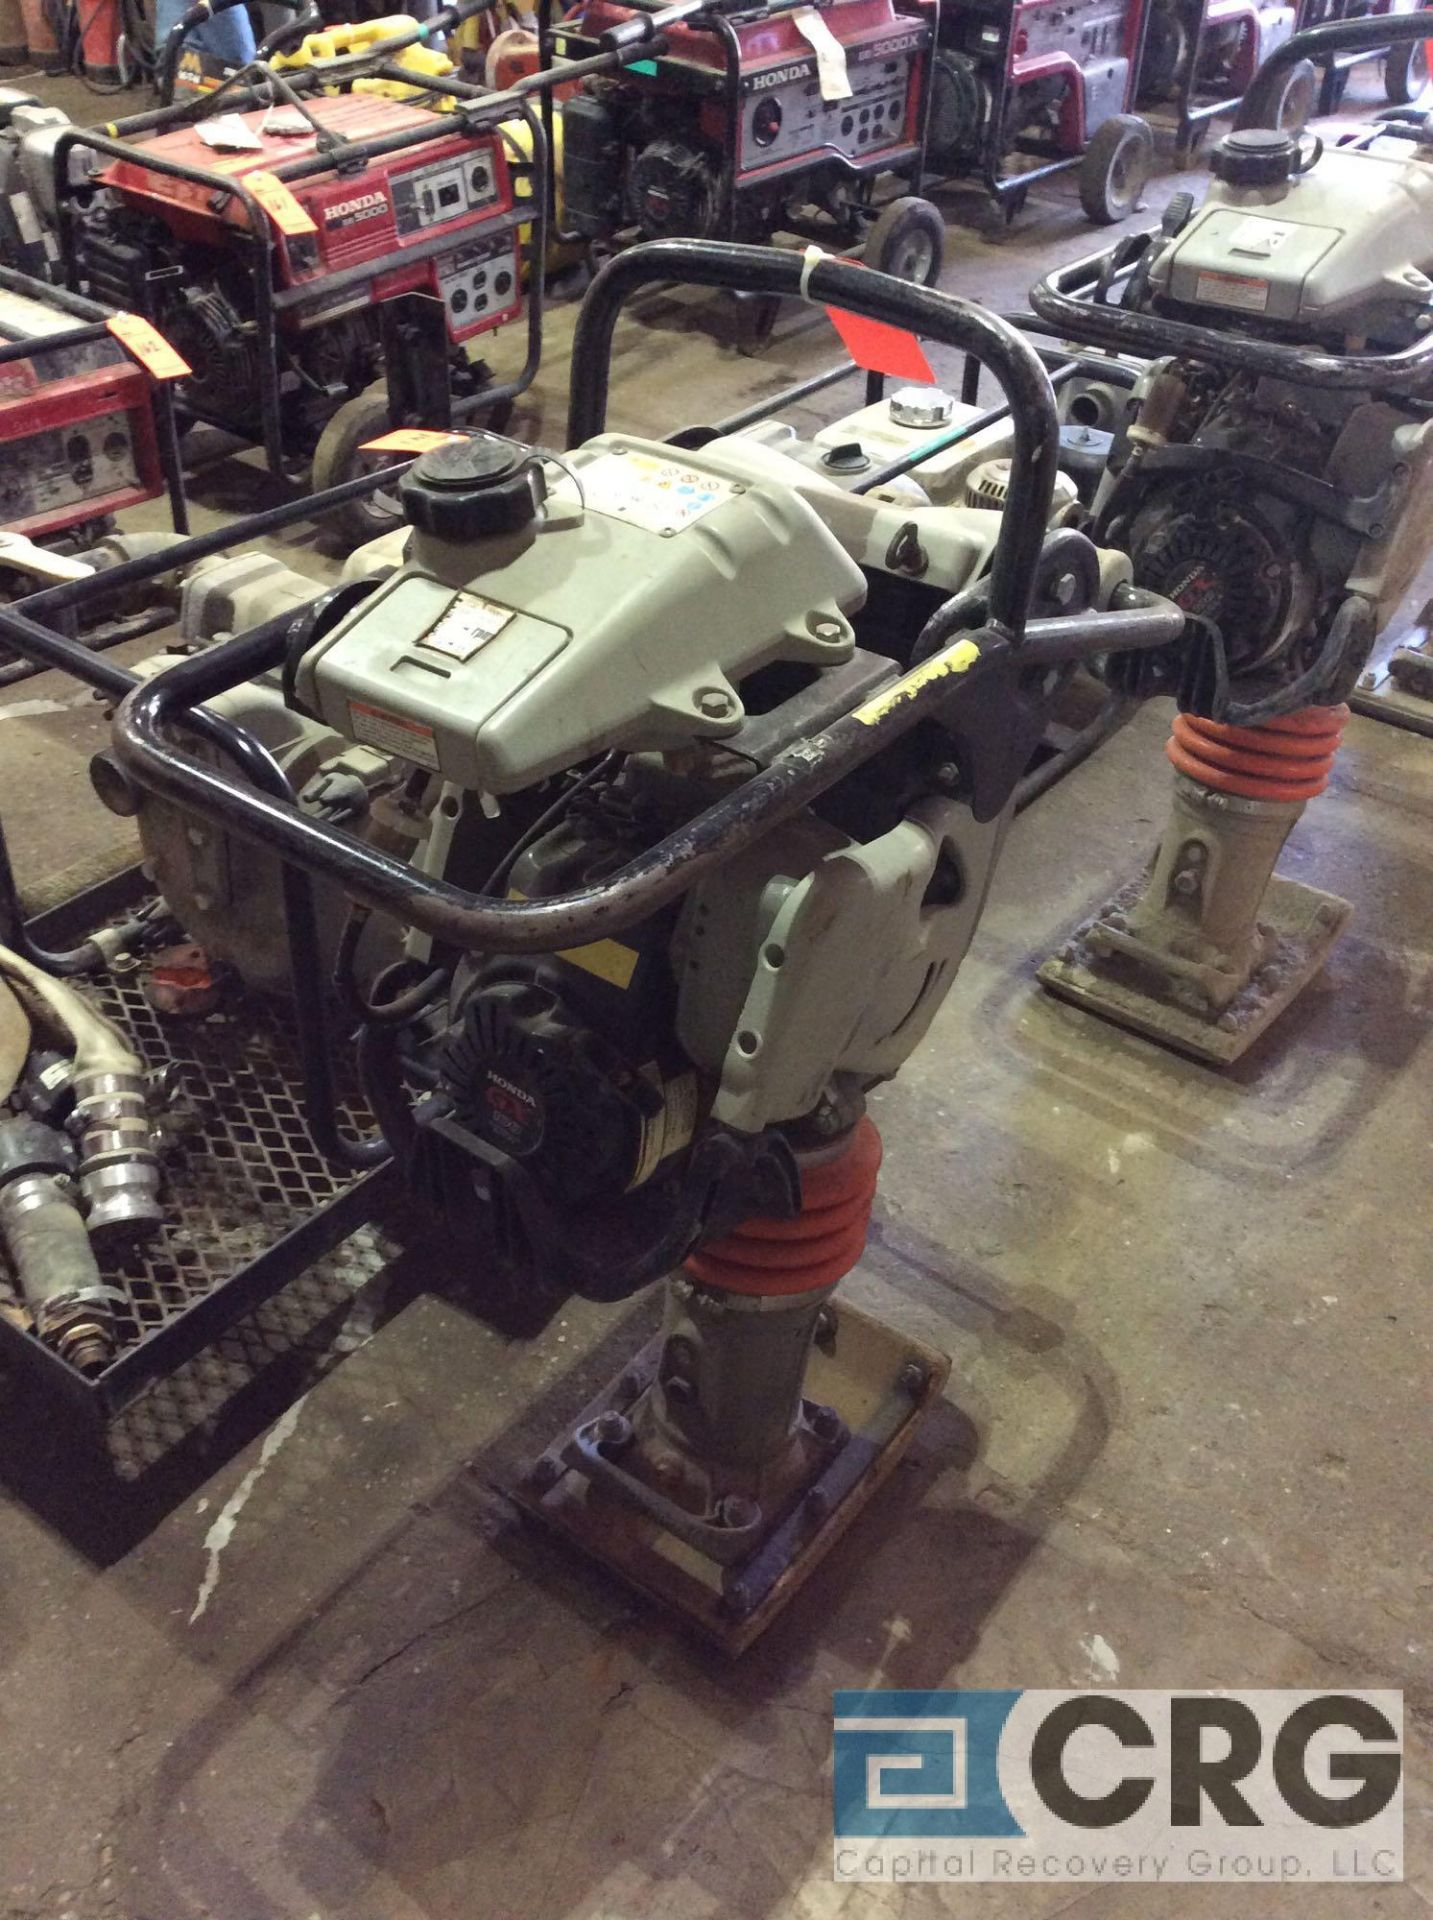 Lot 128 - MultiQuip MTX60 jumping jack tamper with Honda GX100 motor, 98 hours